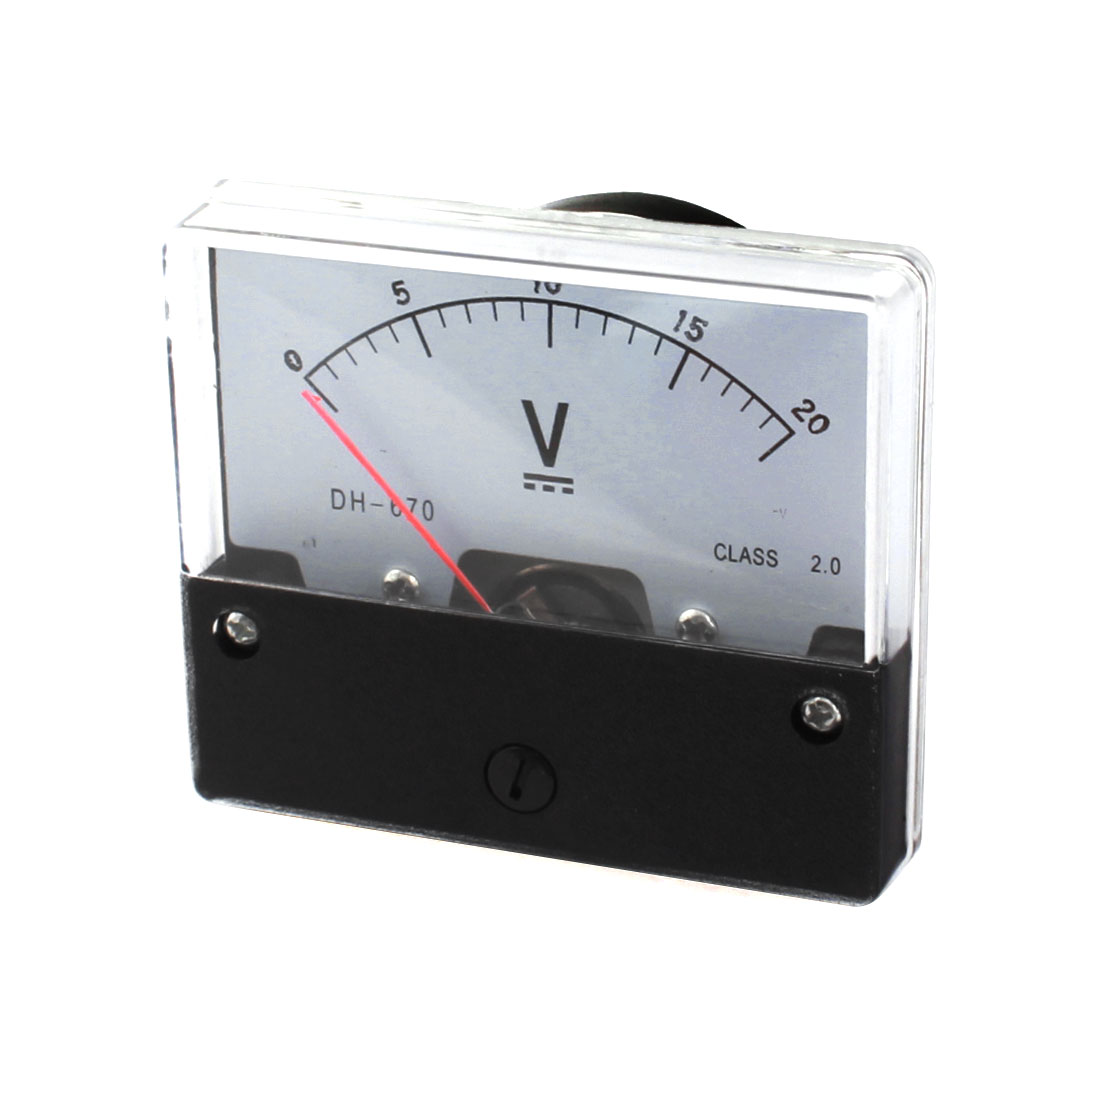 DC 0-20V Class 2.0 Rectangle Clear Plastic Panel Mount Gauge Voltmeter Voltage Meter for Lab